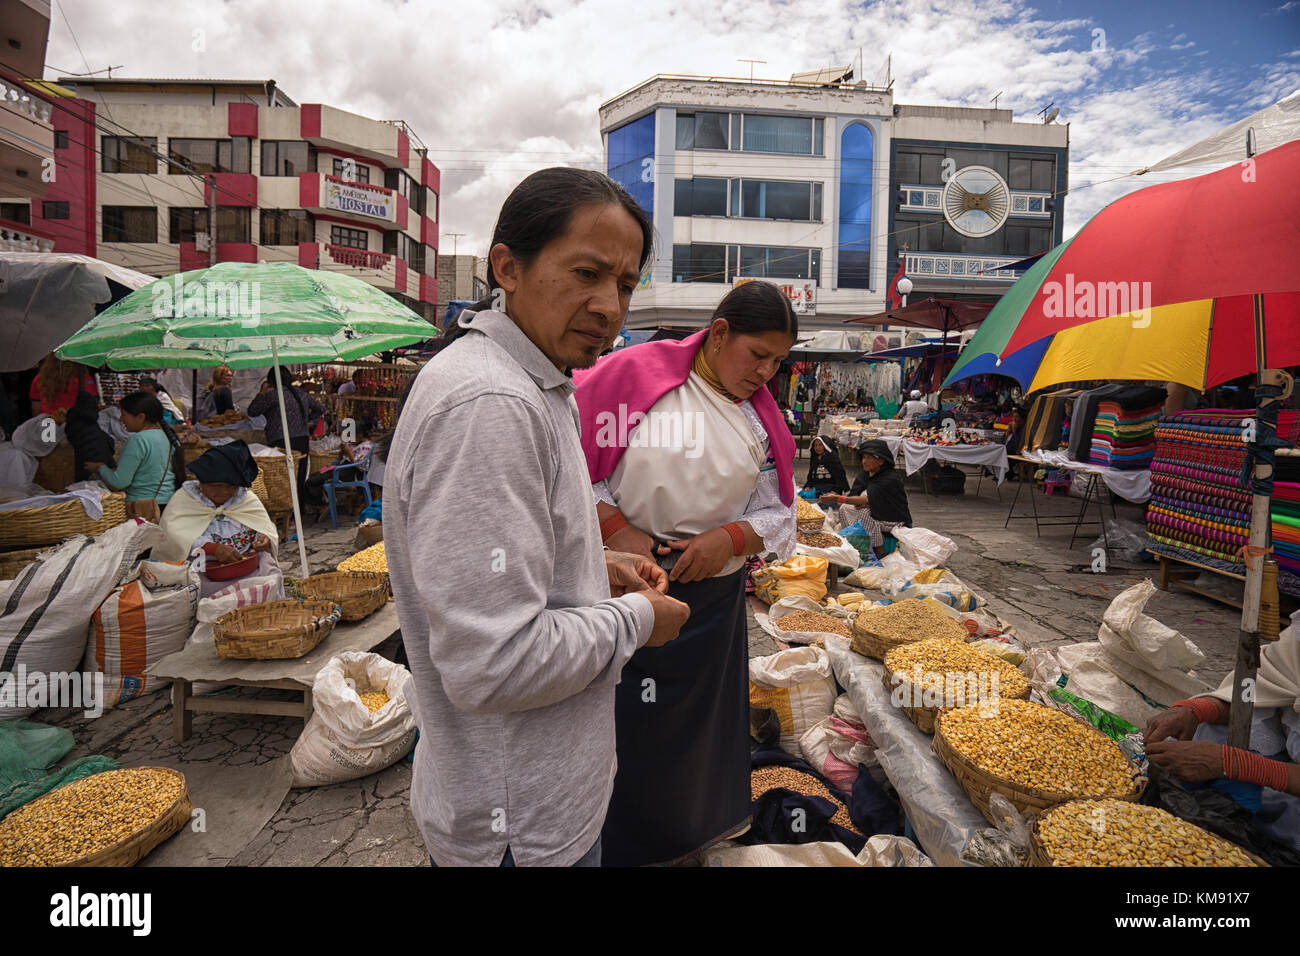 Otavalo, Ecuador - December 2, 2017: indigenous man and woman shopping in the Saturday outdoor artisan and farmer's - Stock Image